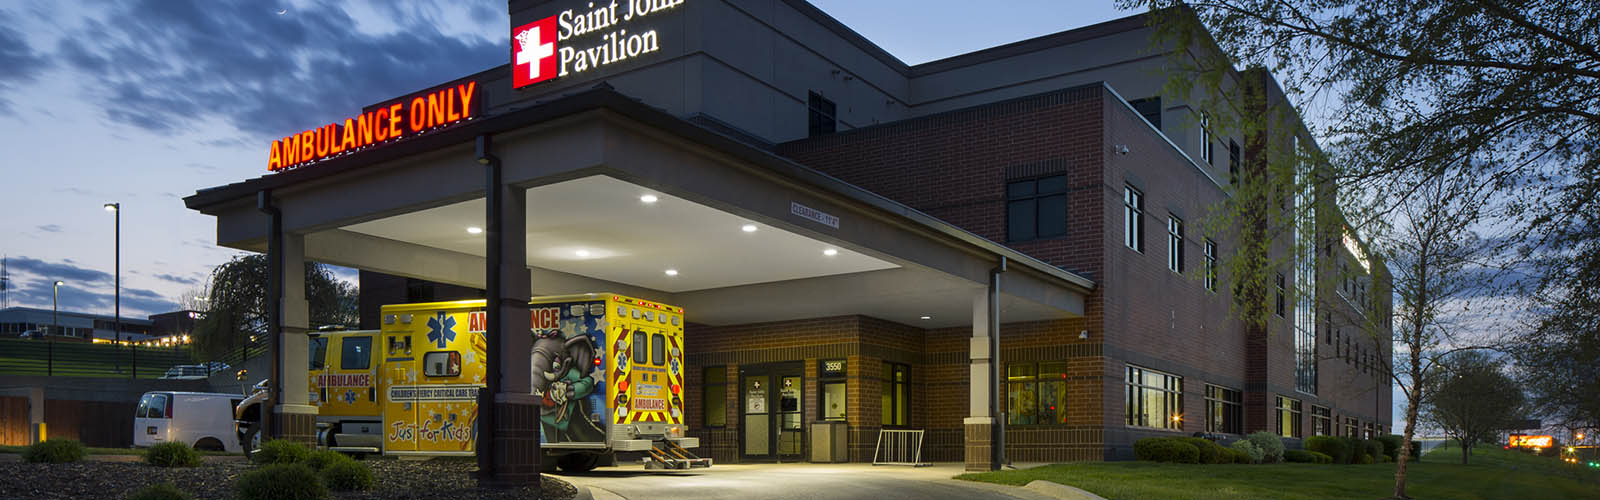 Saint John Hospital Emergency Department 1